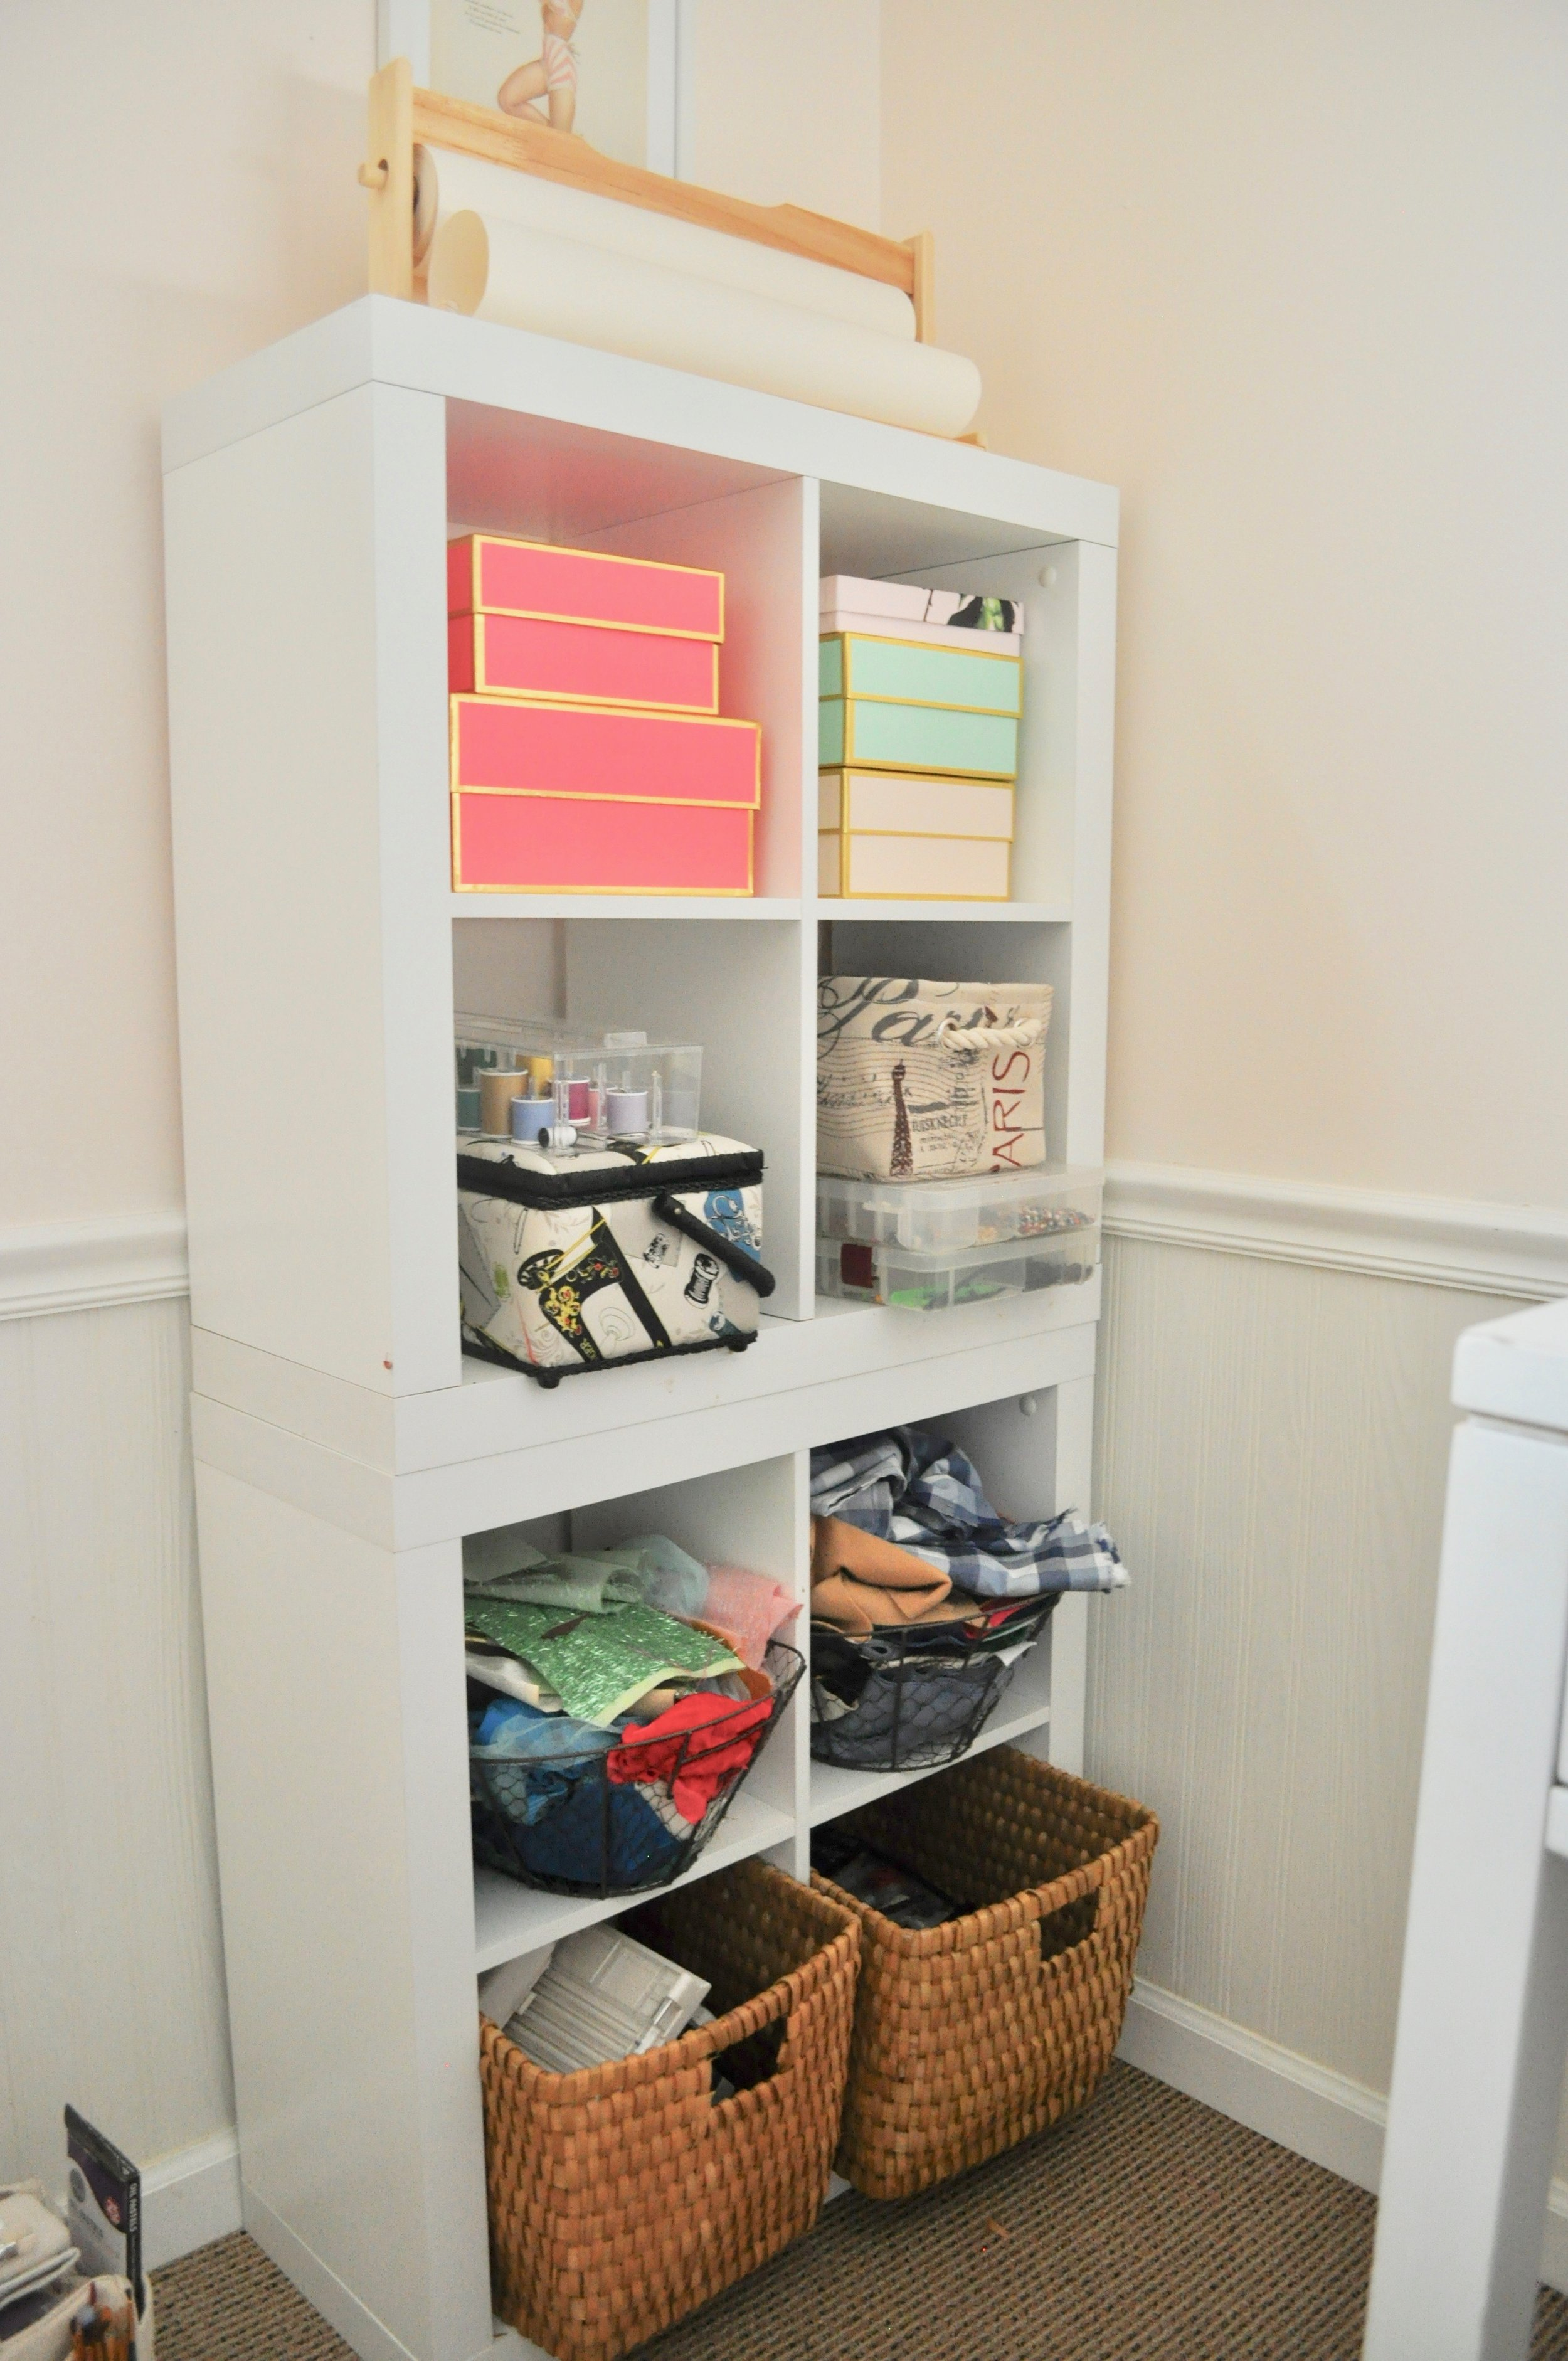 Two 4-cube organizers stacked into a tower, holding a variety of sewing and fabric supplies